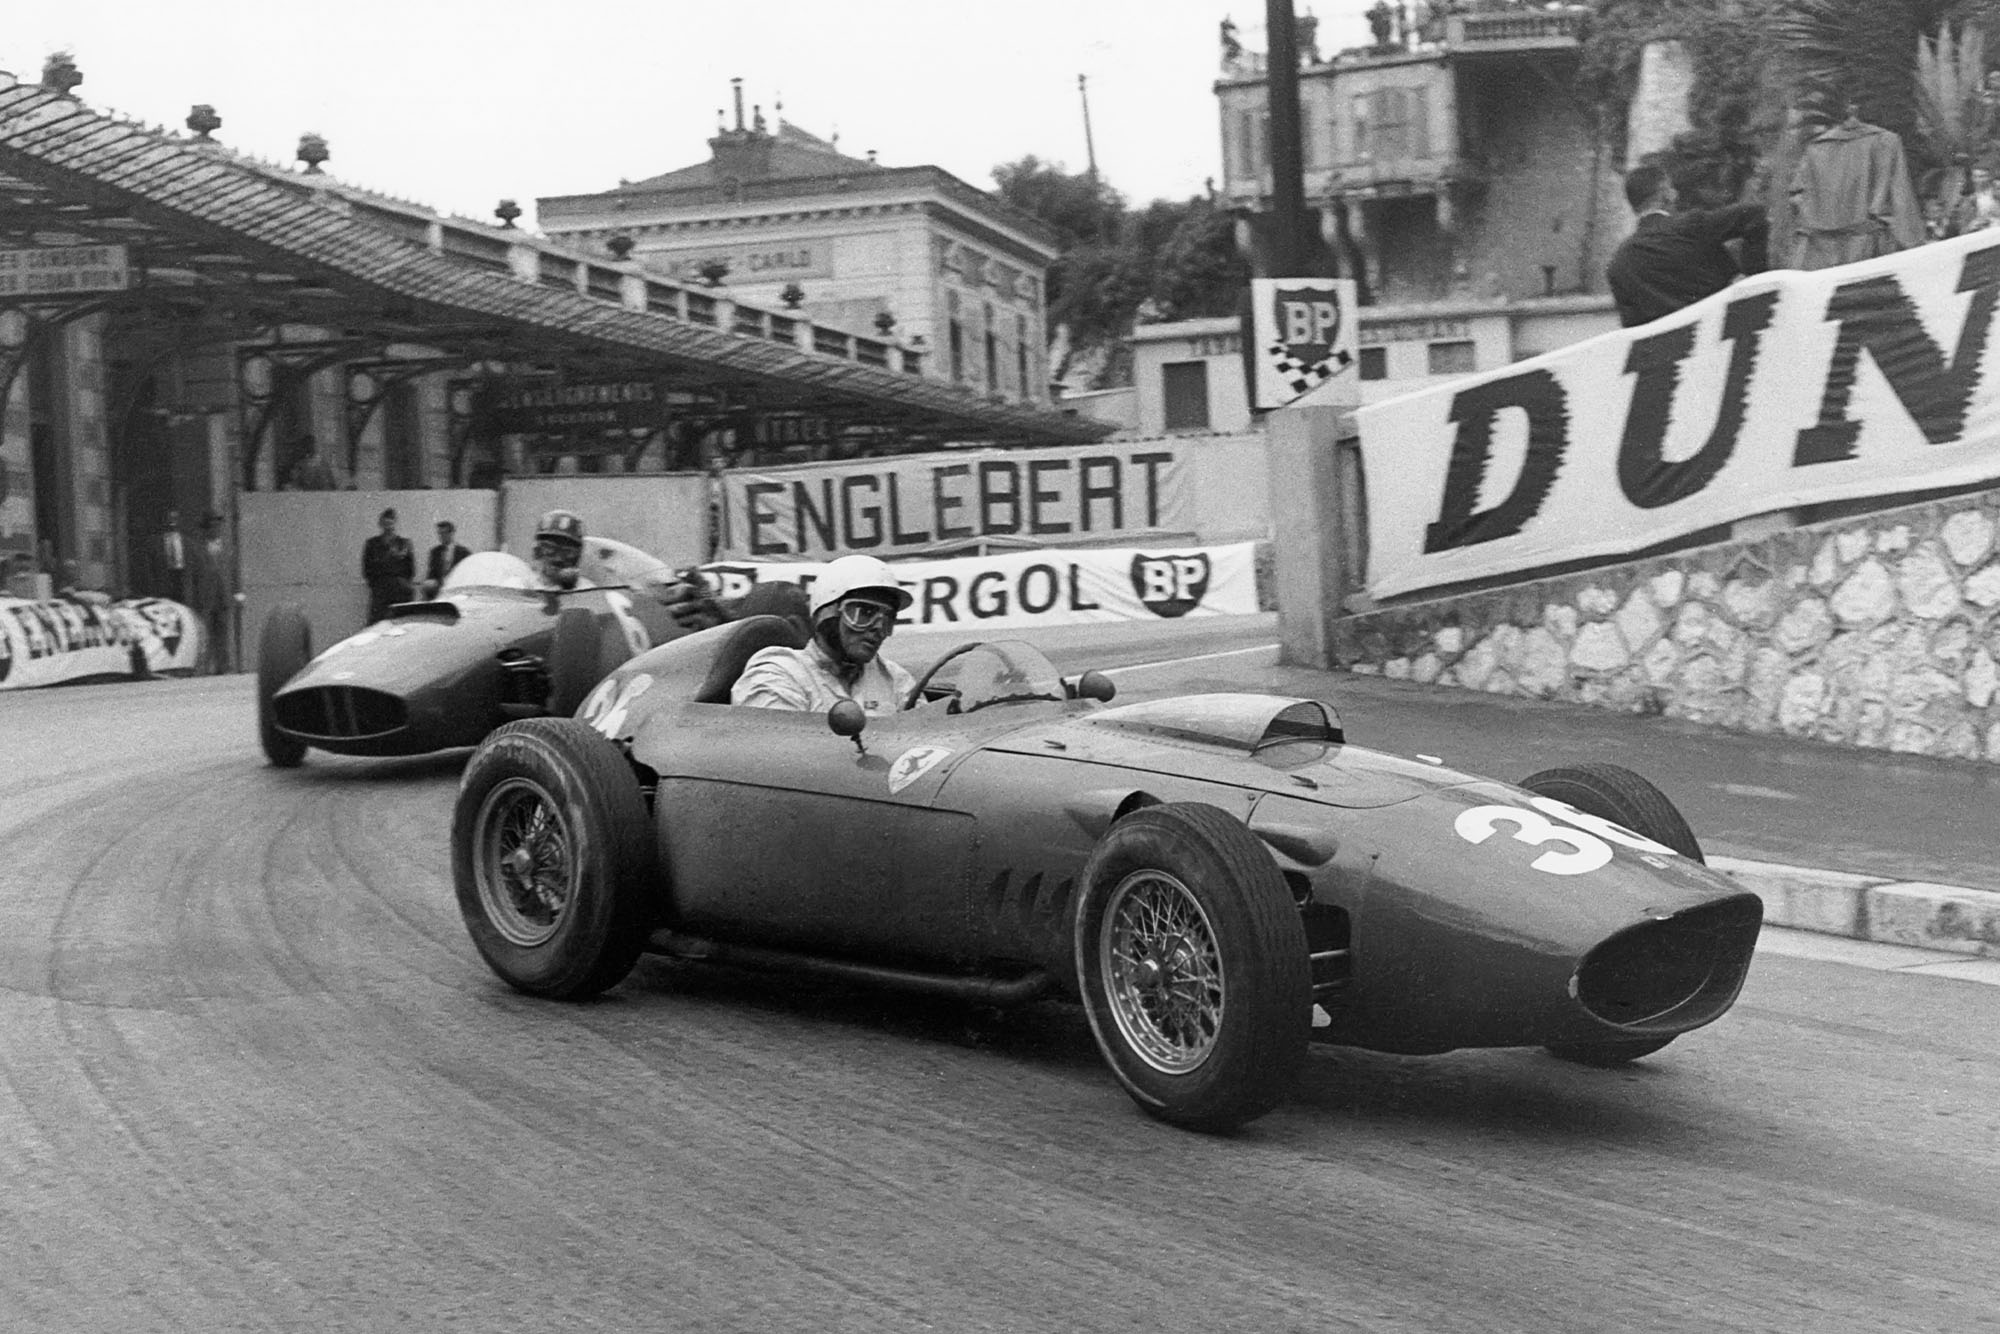 Phil Hill, Graham Hill, Ferrari 246, BRM P48, Grand Prix of Monaco, Circuit de Monaco, 29 May 1960. Phil Hill and Graham Hill, two future World Champions racing in the streets of Monaco on the occasion of the 1960 Grand Prix of Monaco. (Photo by Bernard Cahier/Getty Images)